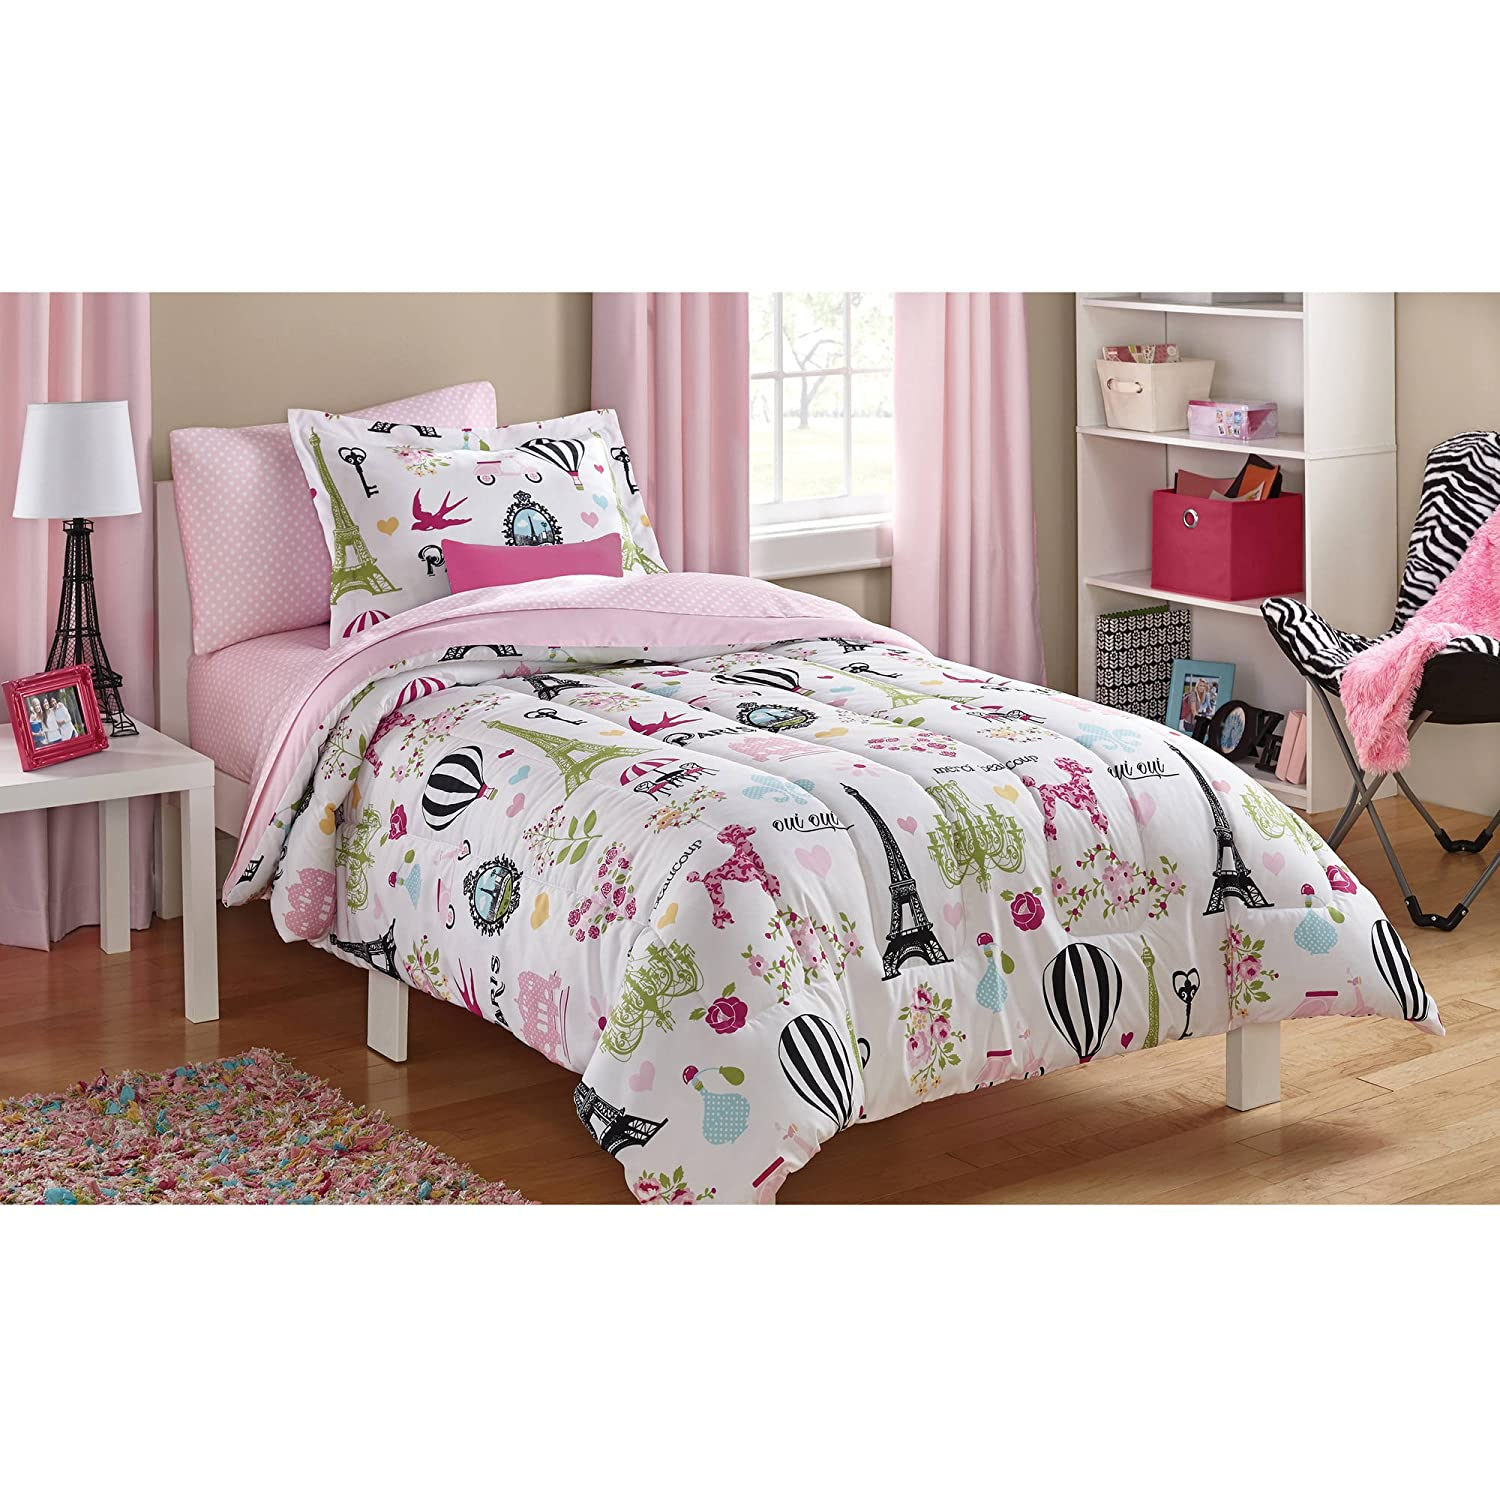 Mainstays Kids Paris Reversible Solid Pink Full Bedding Comforter for Girls (7 Piece in a Bag)